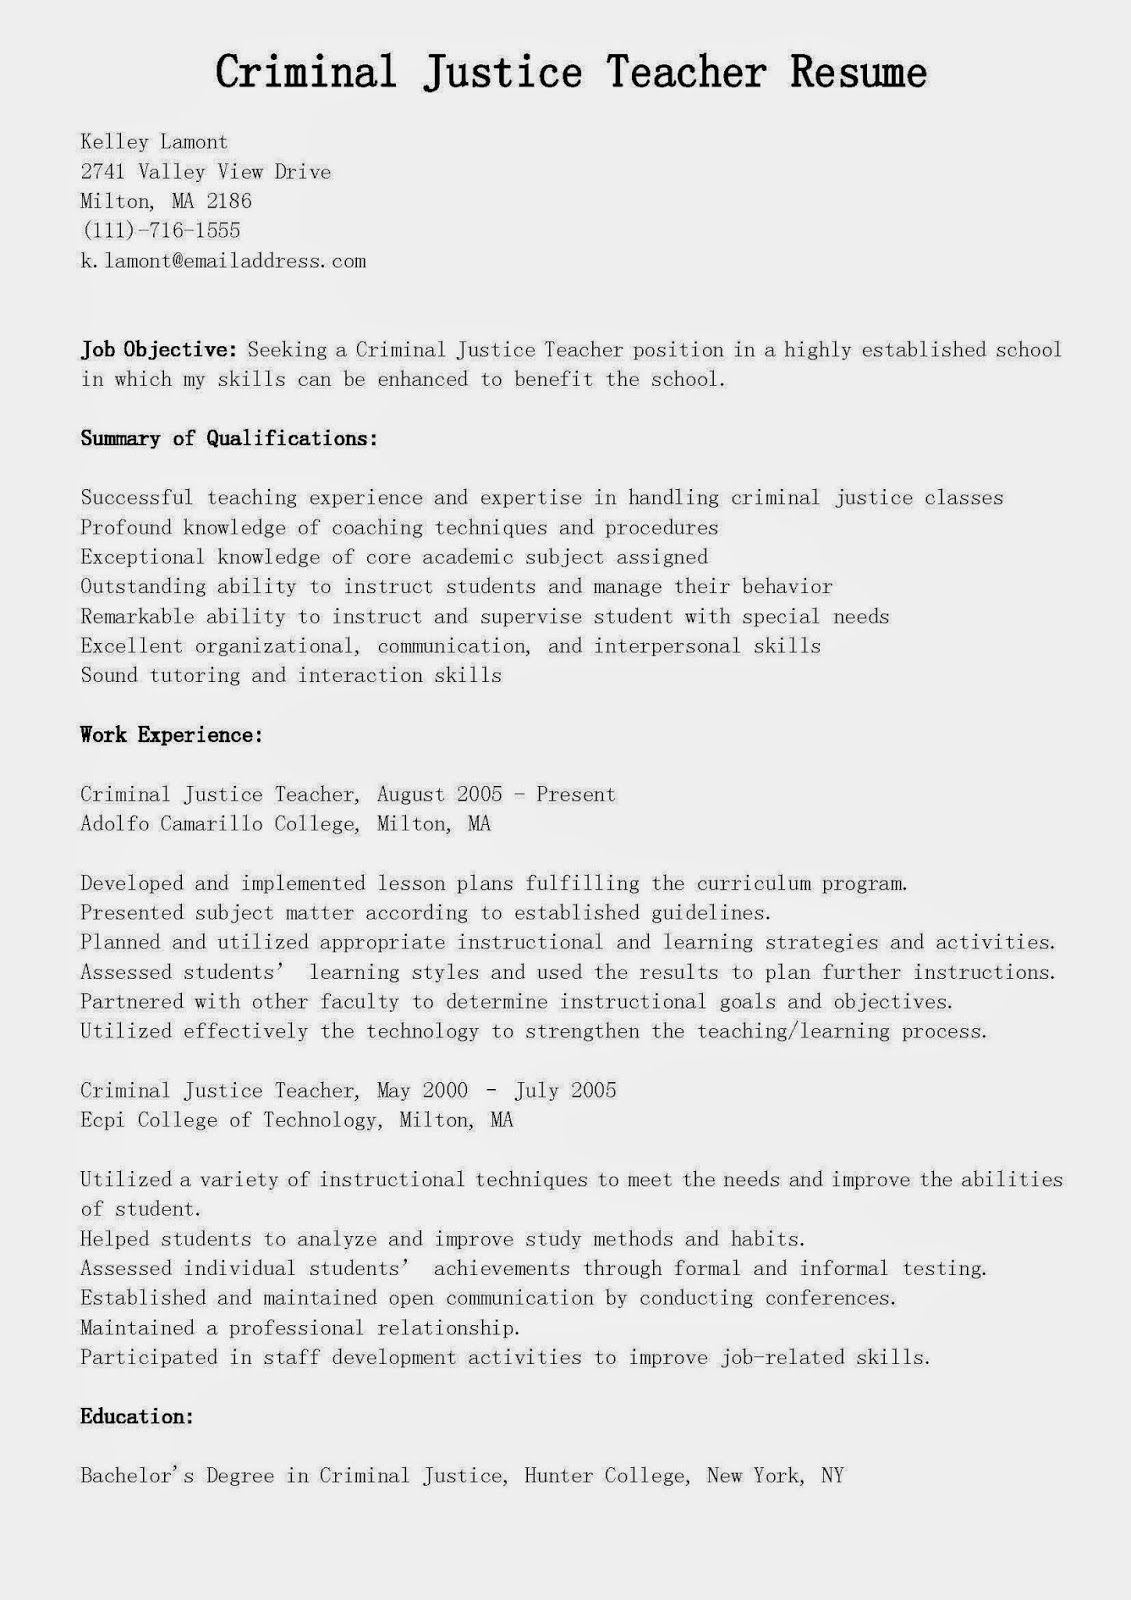 resume objective teacher elementary teacher this - Objective For A Teacher Resume